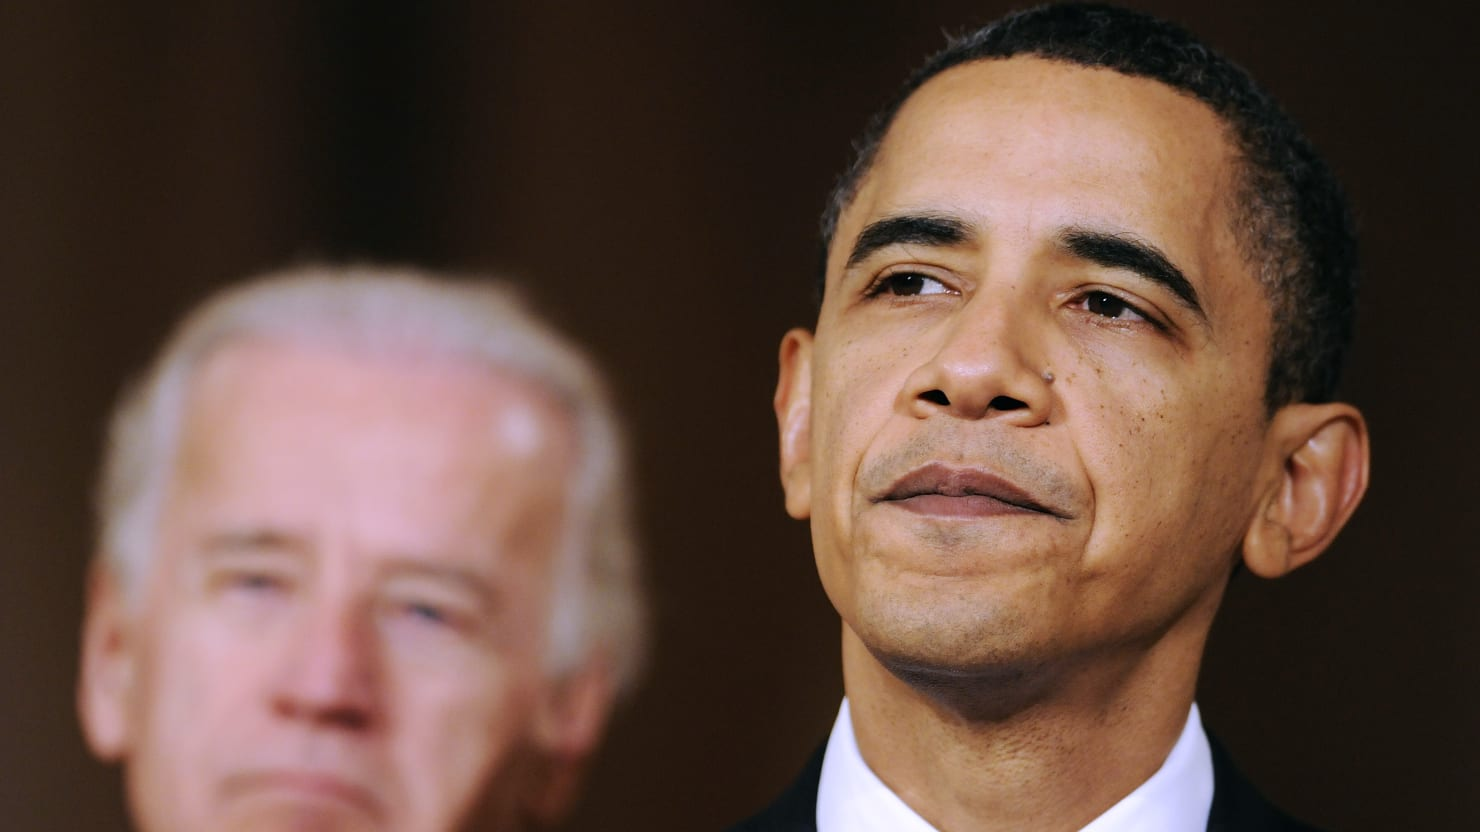 It's Time for Obama to Man Up and Back Biden